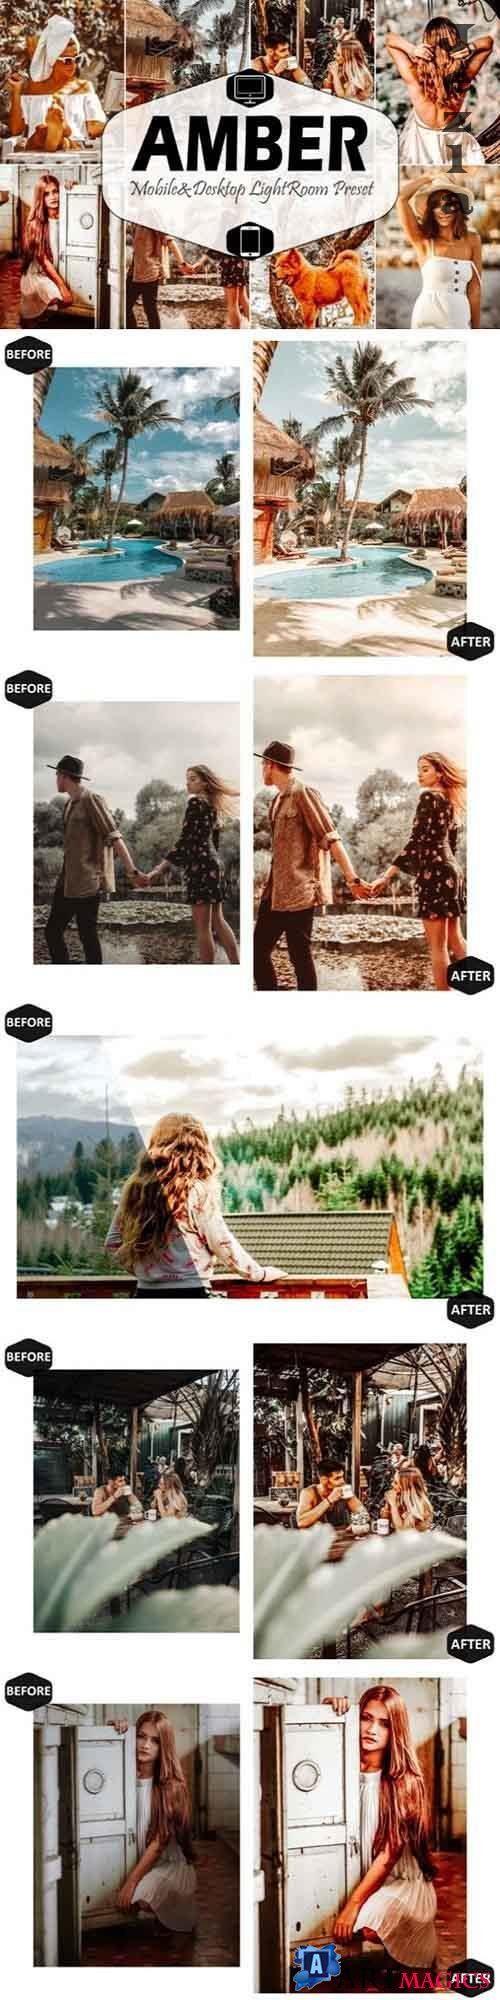 10 Amber Mobile & Desktop Lightroom Presets, warm LR preset - 616916